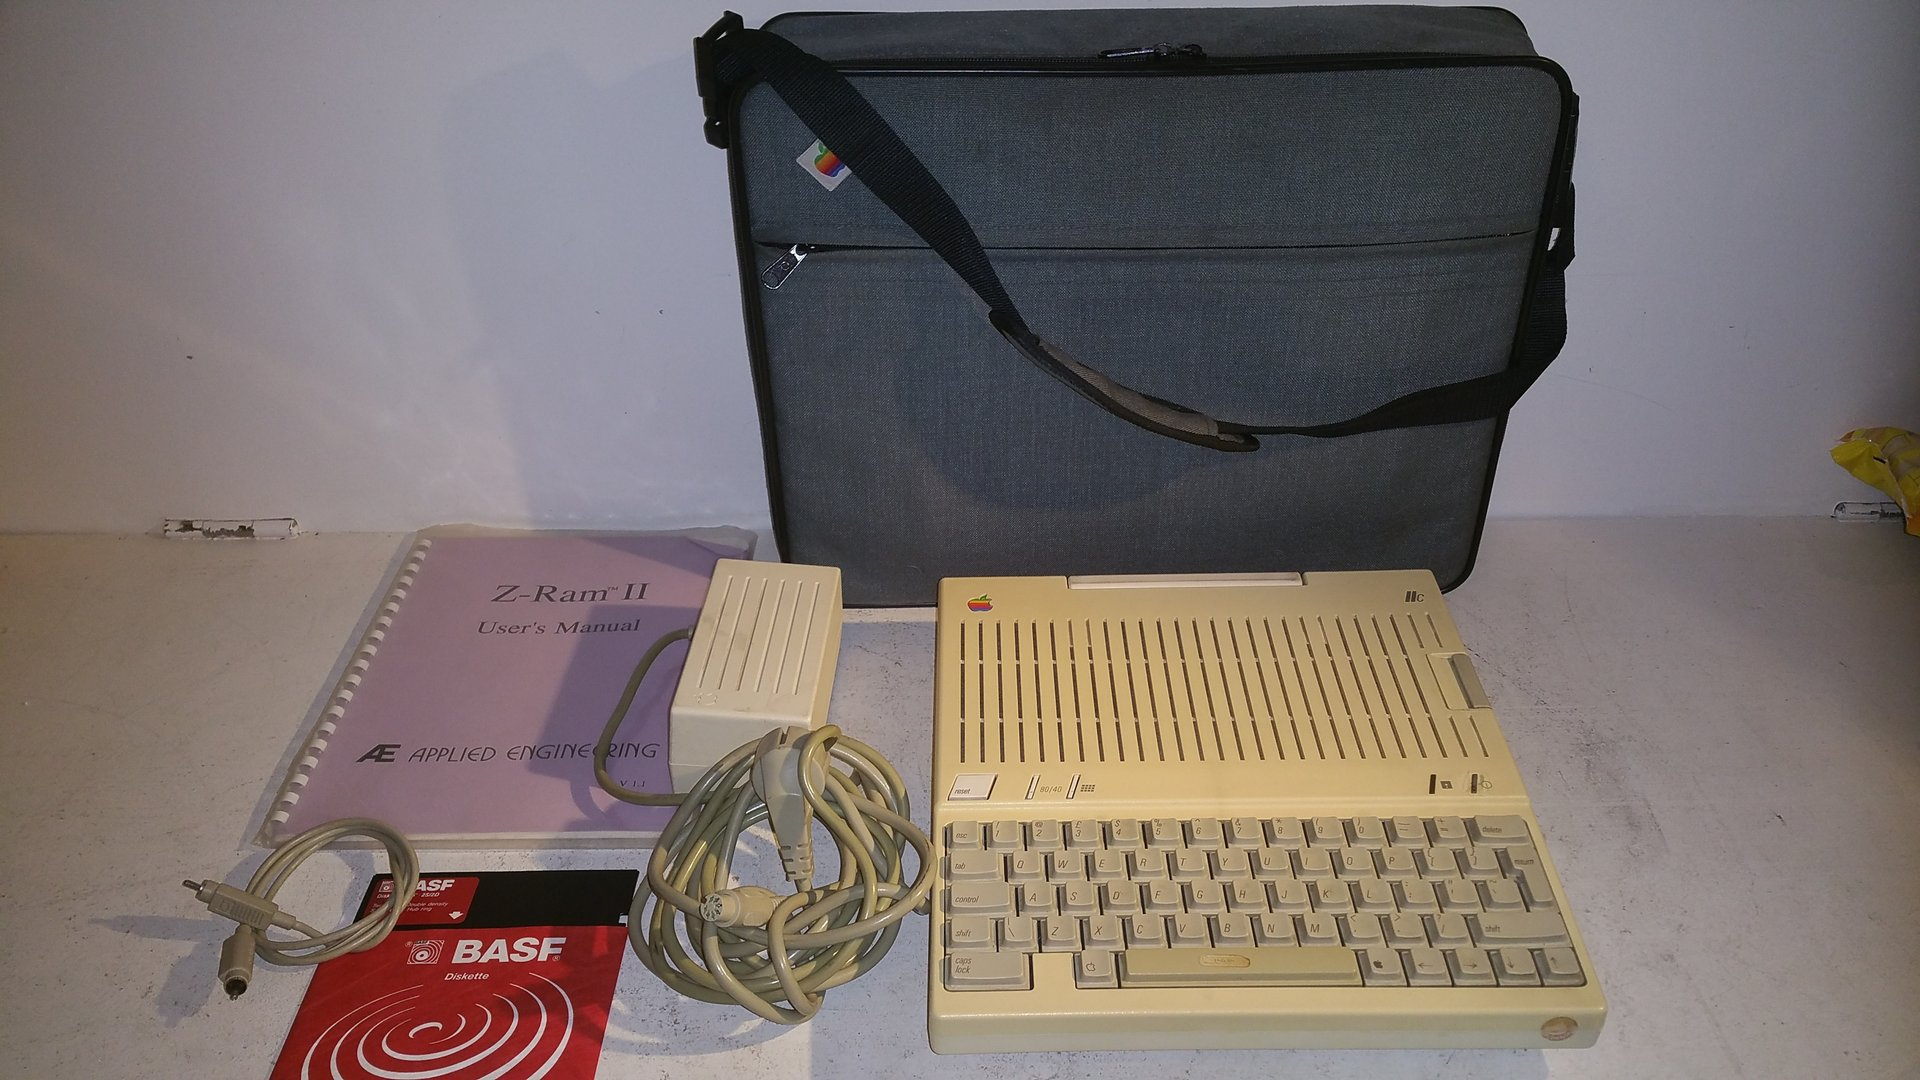 Apple IIc Computer in original bag. Power Supply and diskette included